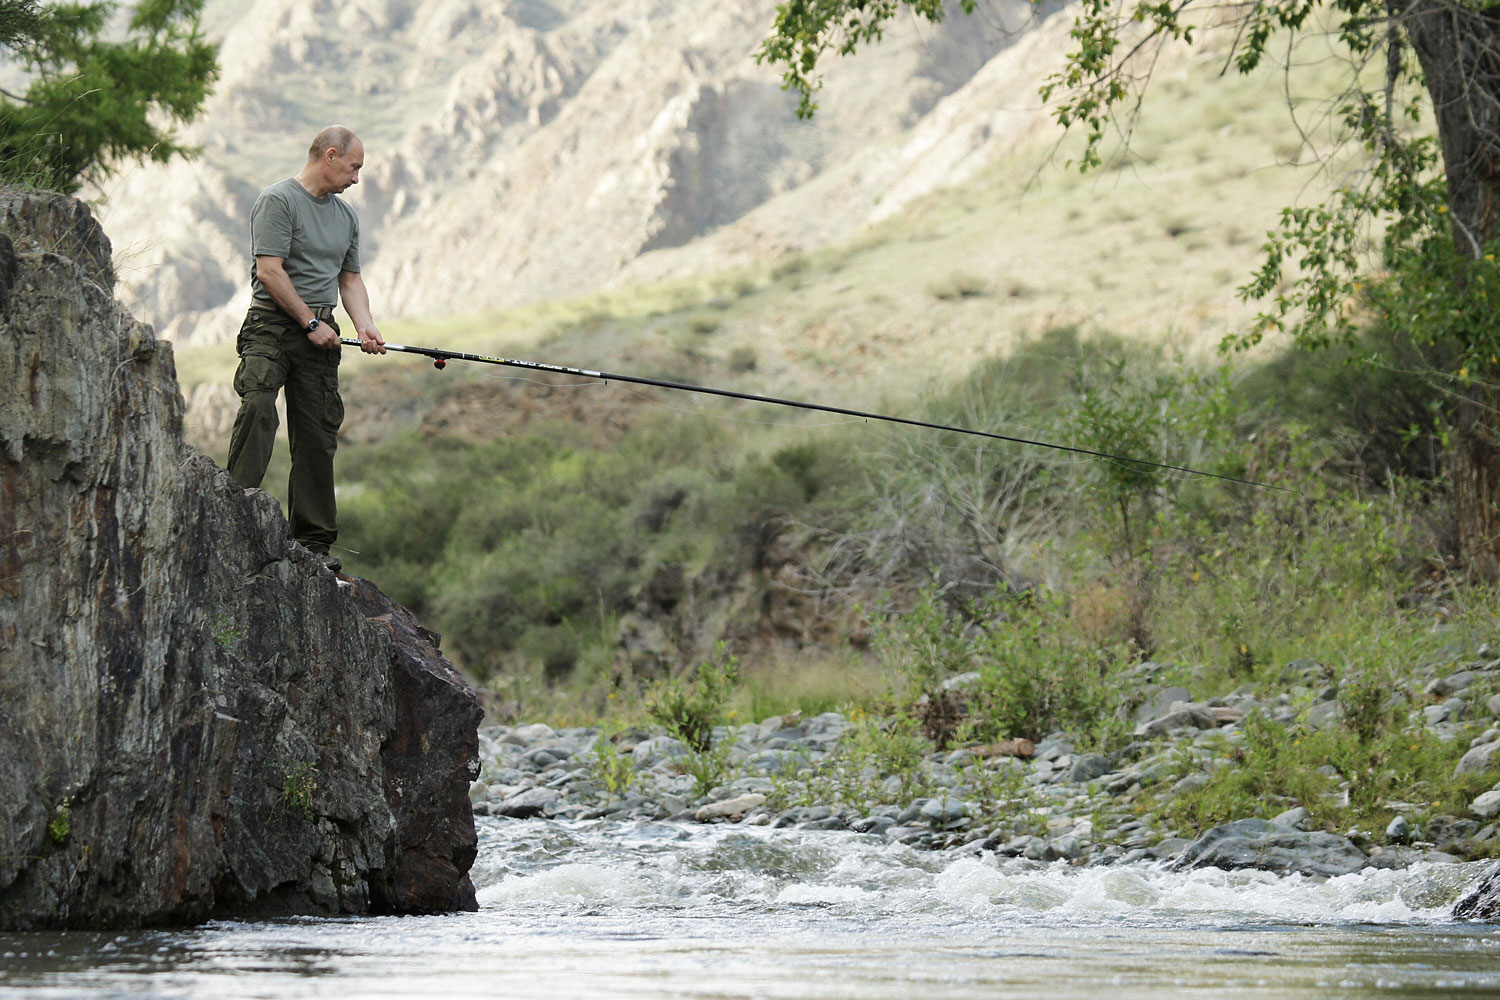 Putin hooked at least one fish from this perch, Aug. 3, 2009.